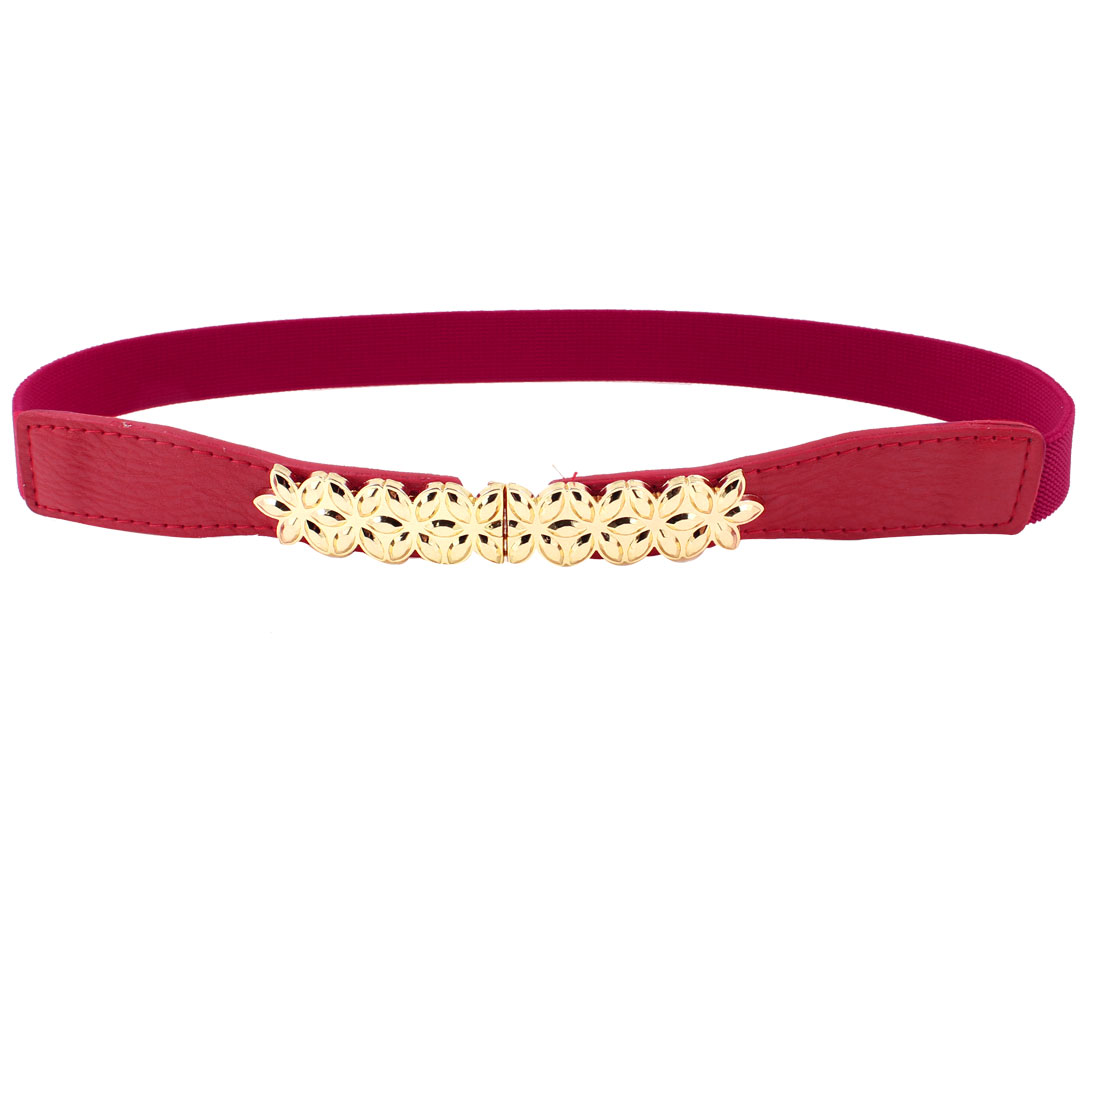 Gold Tone Metal Flower Decor Red Elastic Skinny Waist Band Belt for Lady